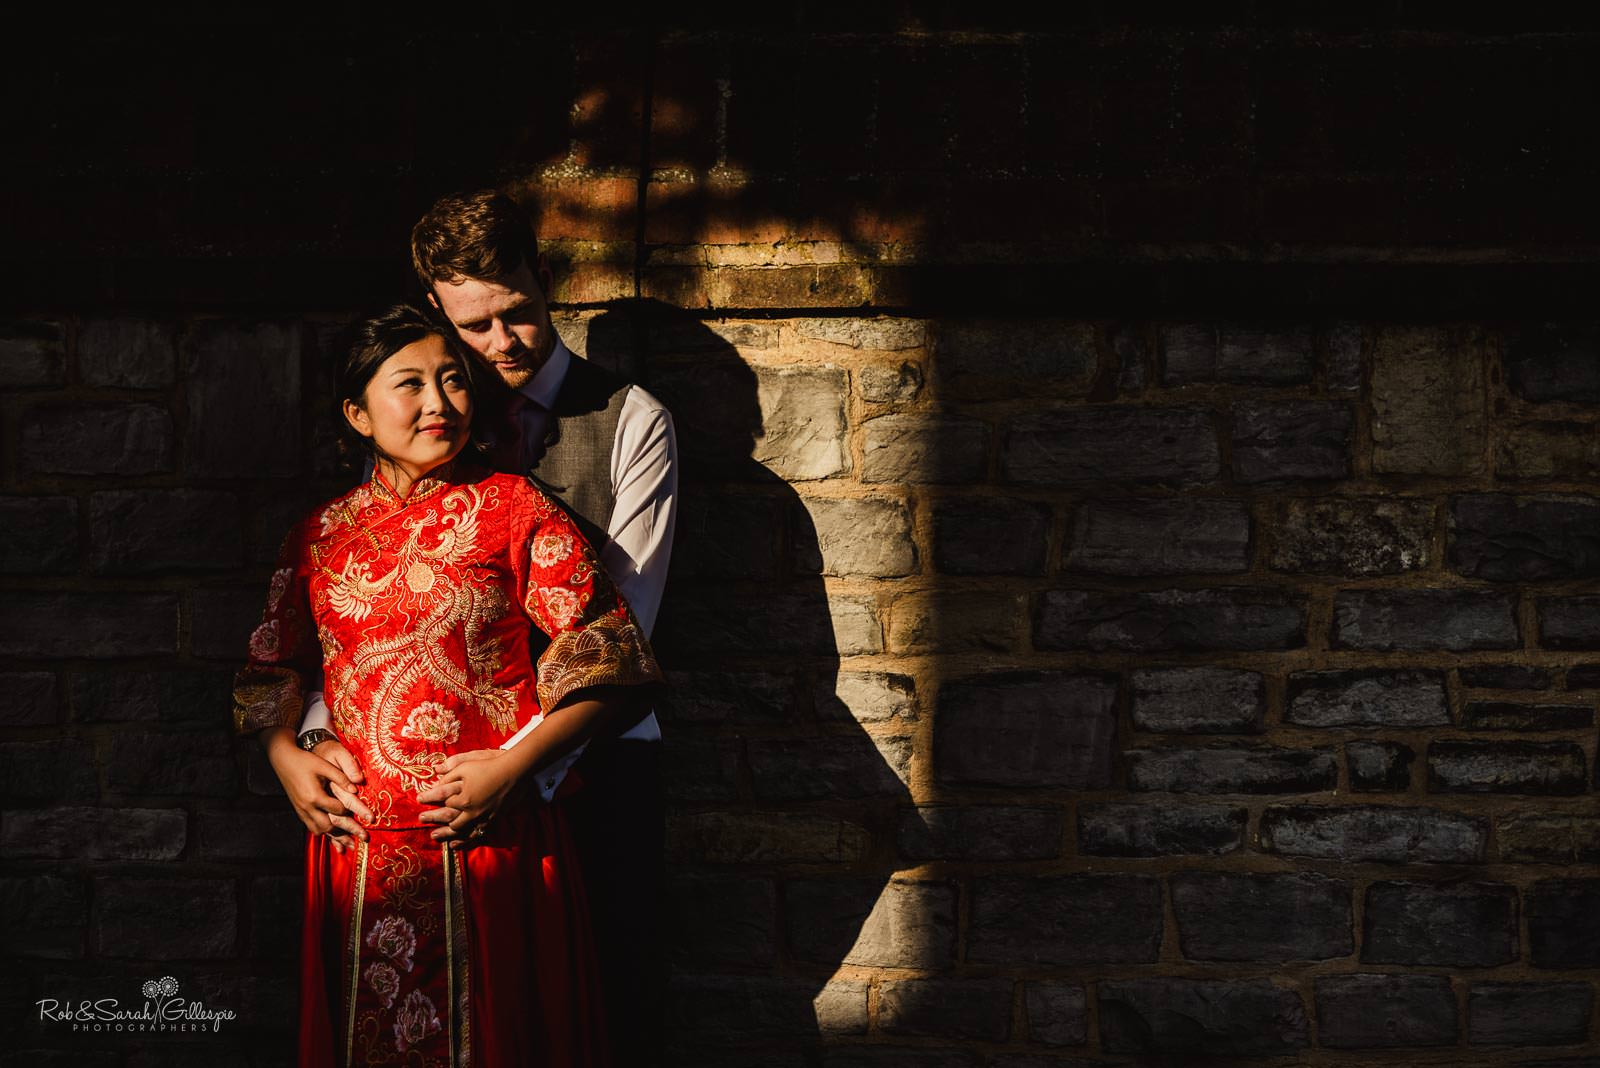 Bride and groom in dramatic evening light